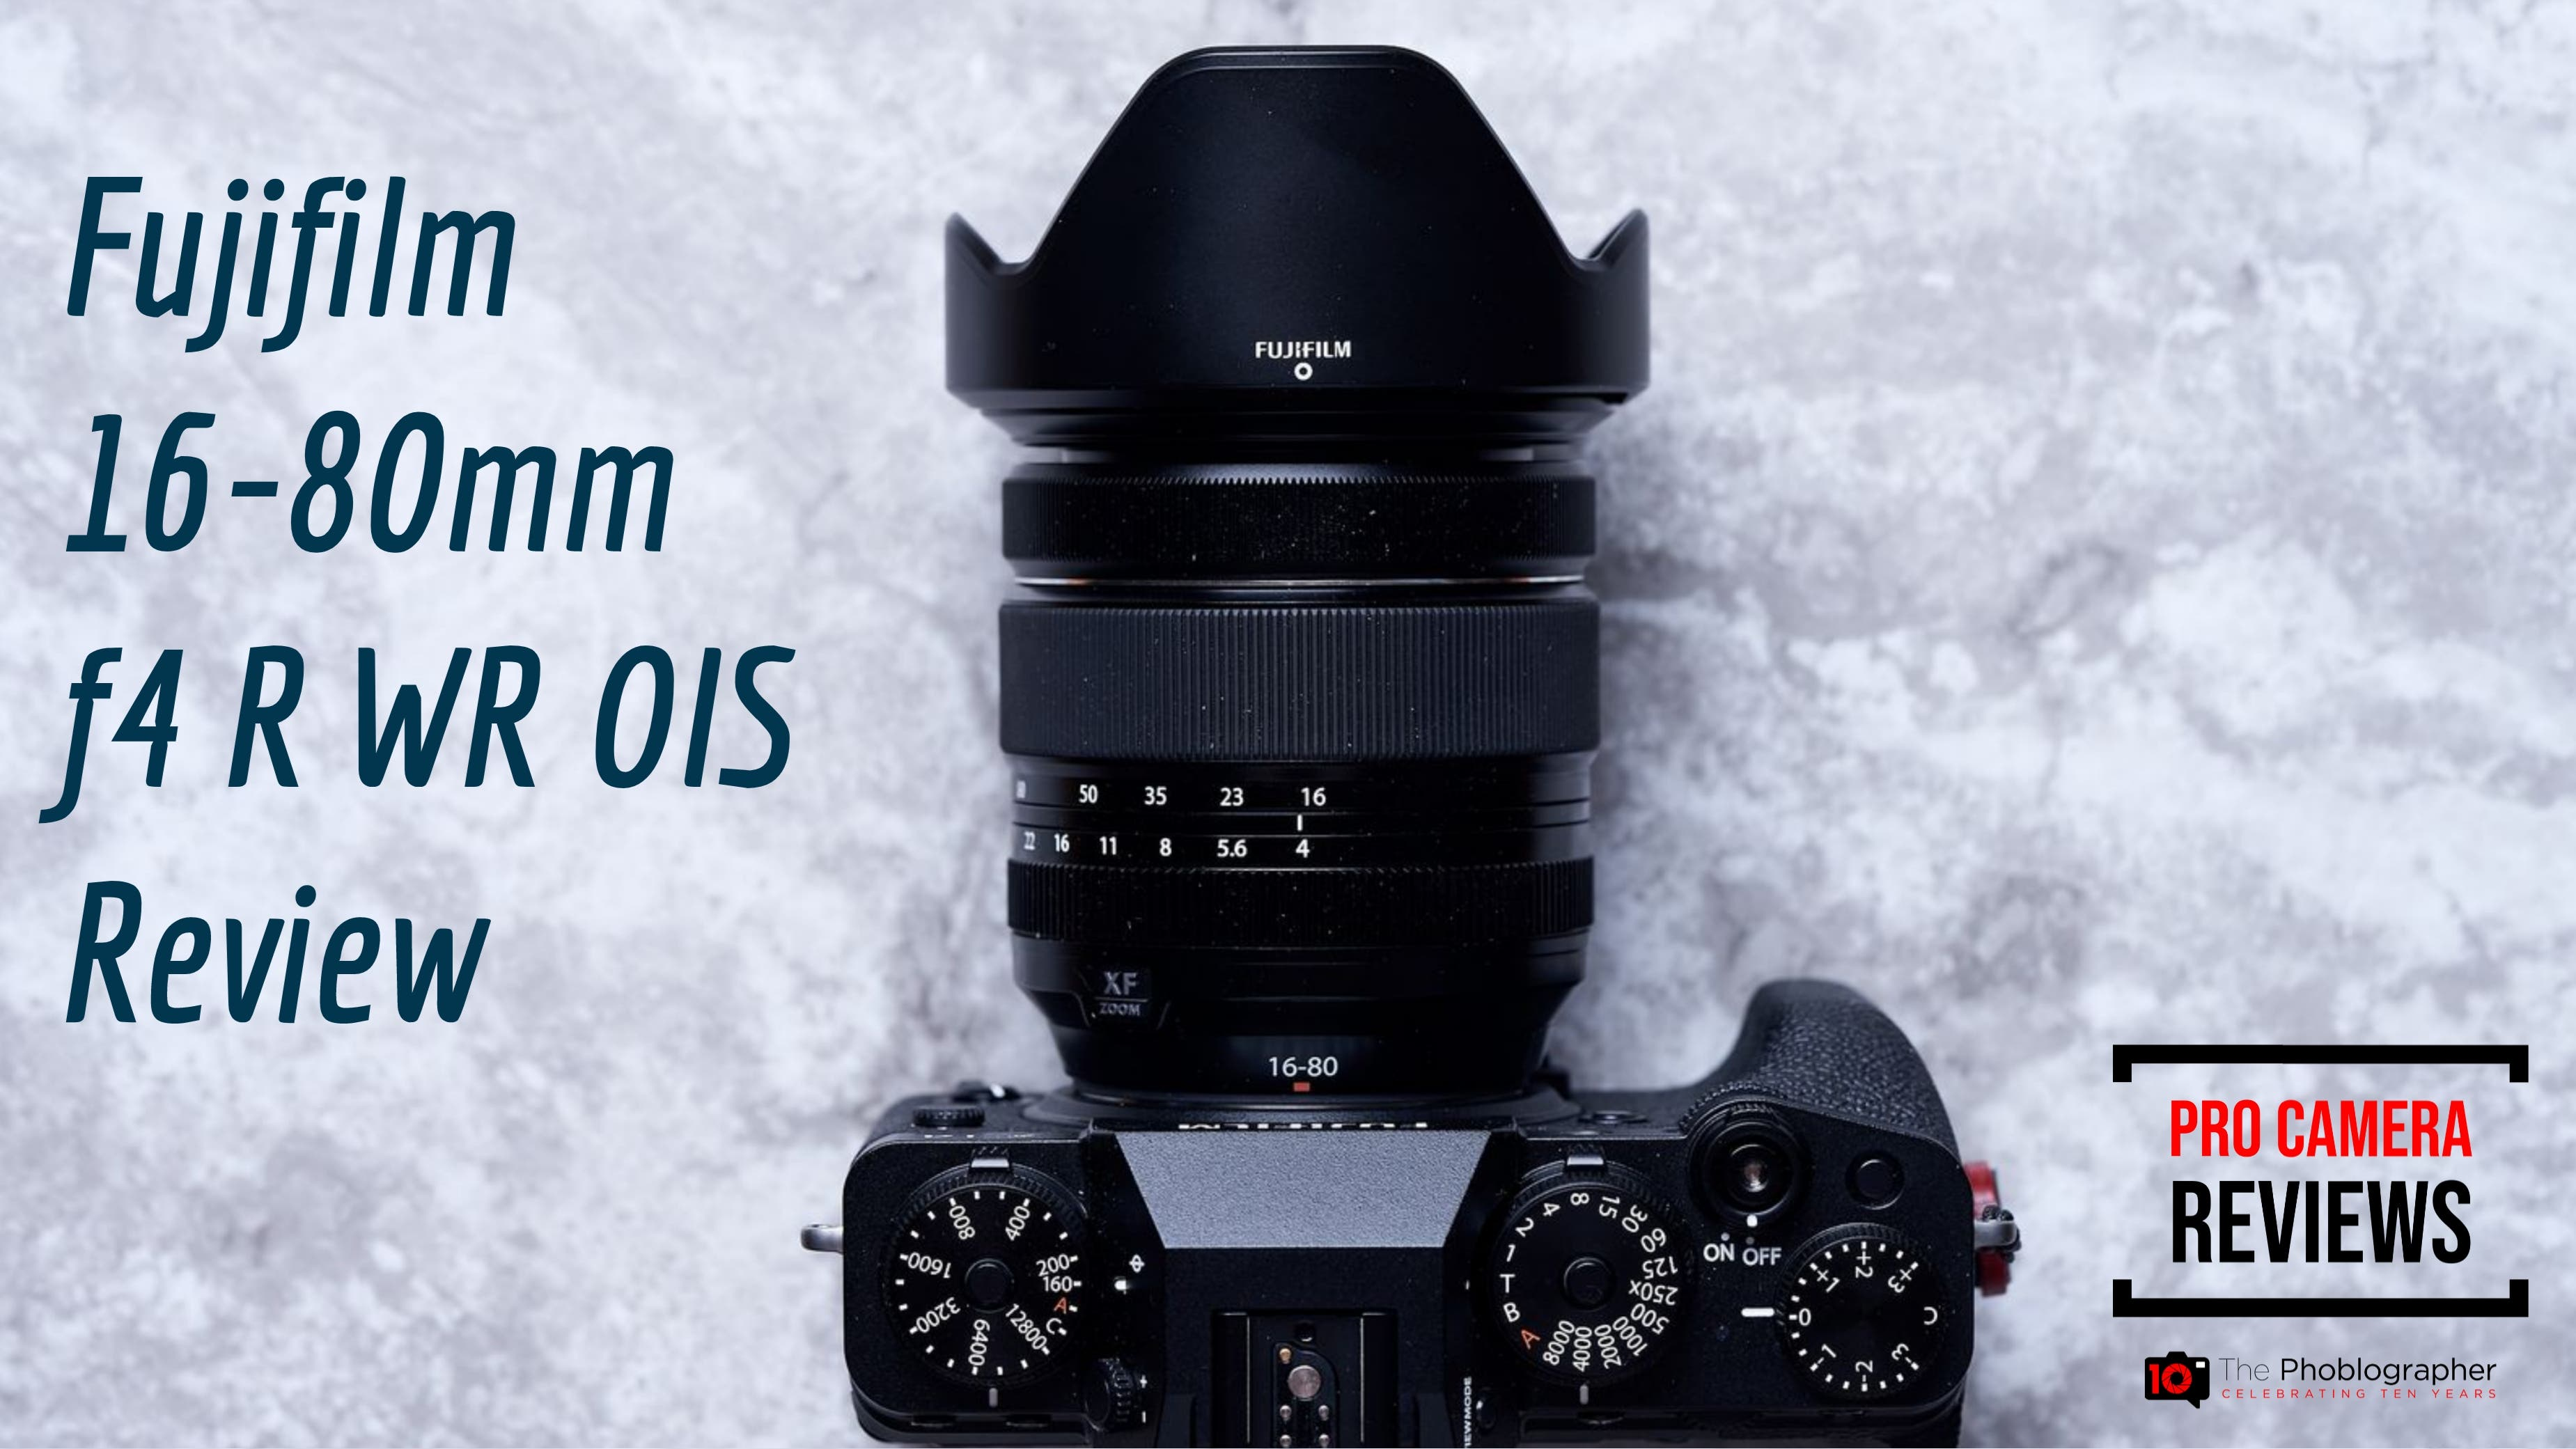 Fujifilm 16-80mm F4 R WR OIS Video Review: (We Love it!)